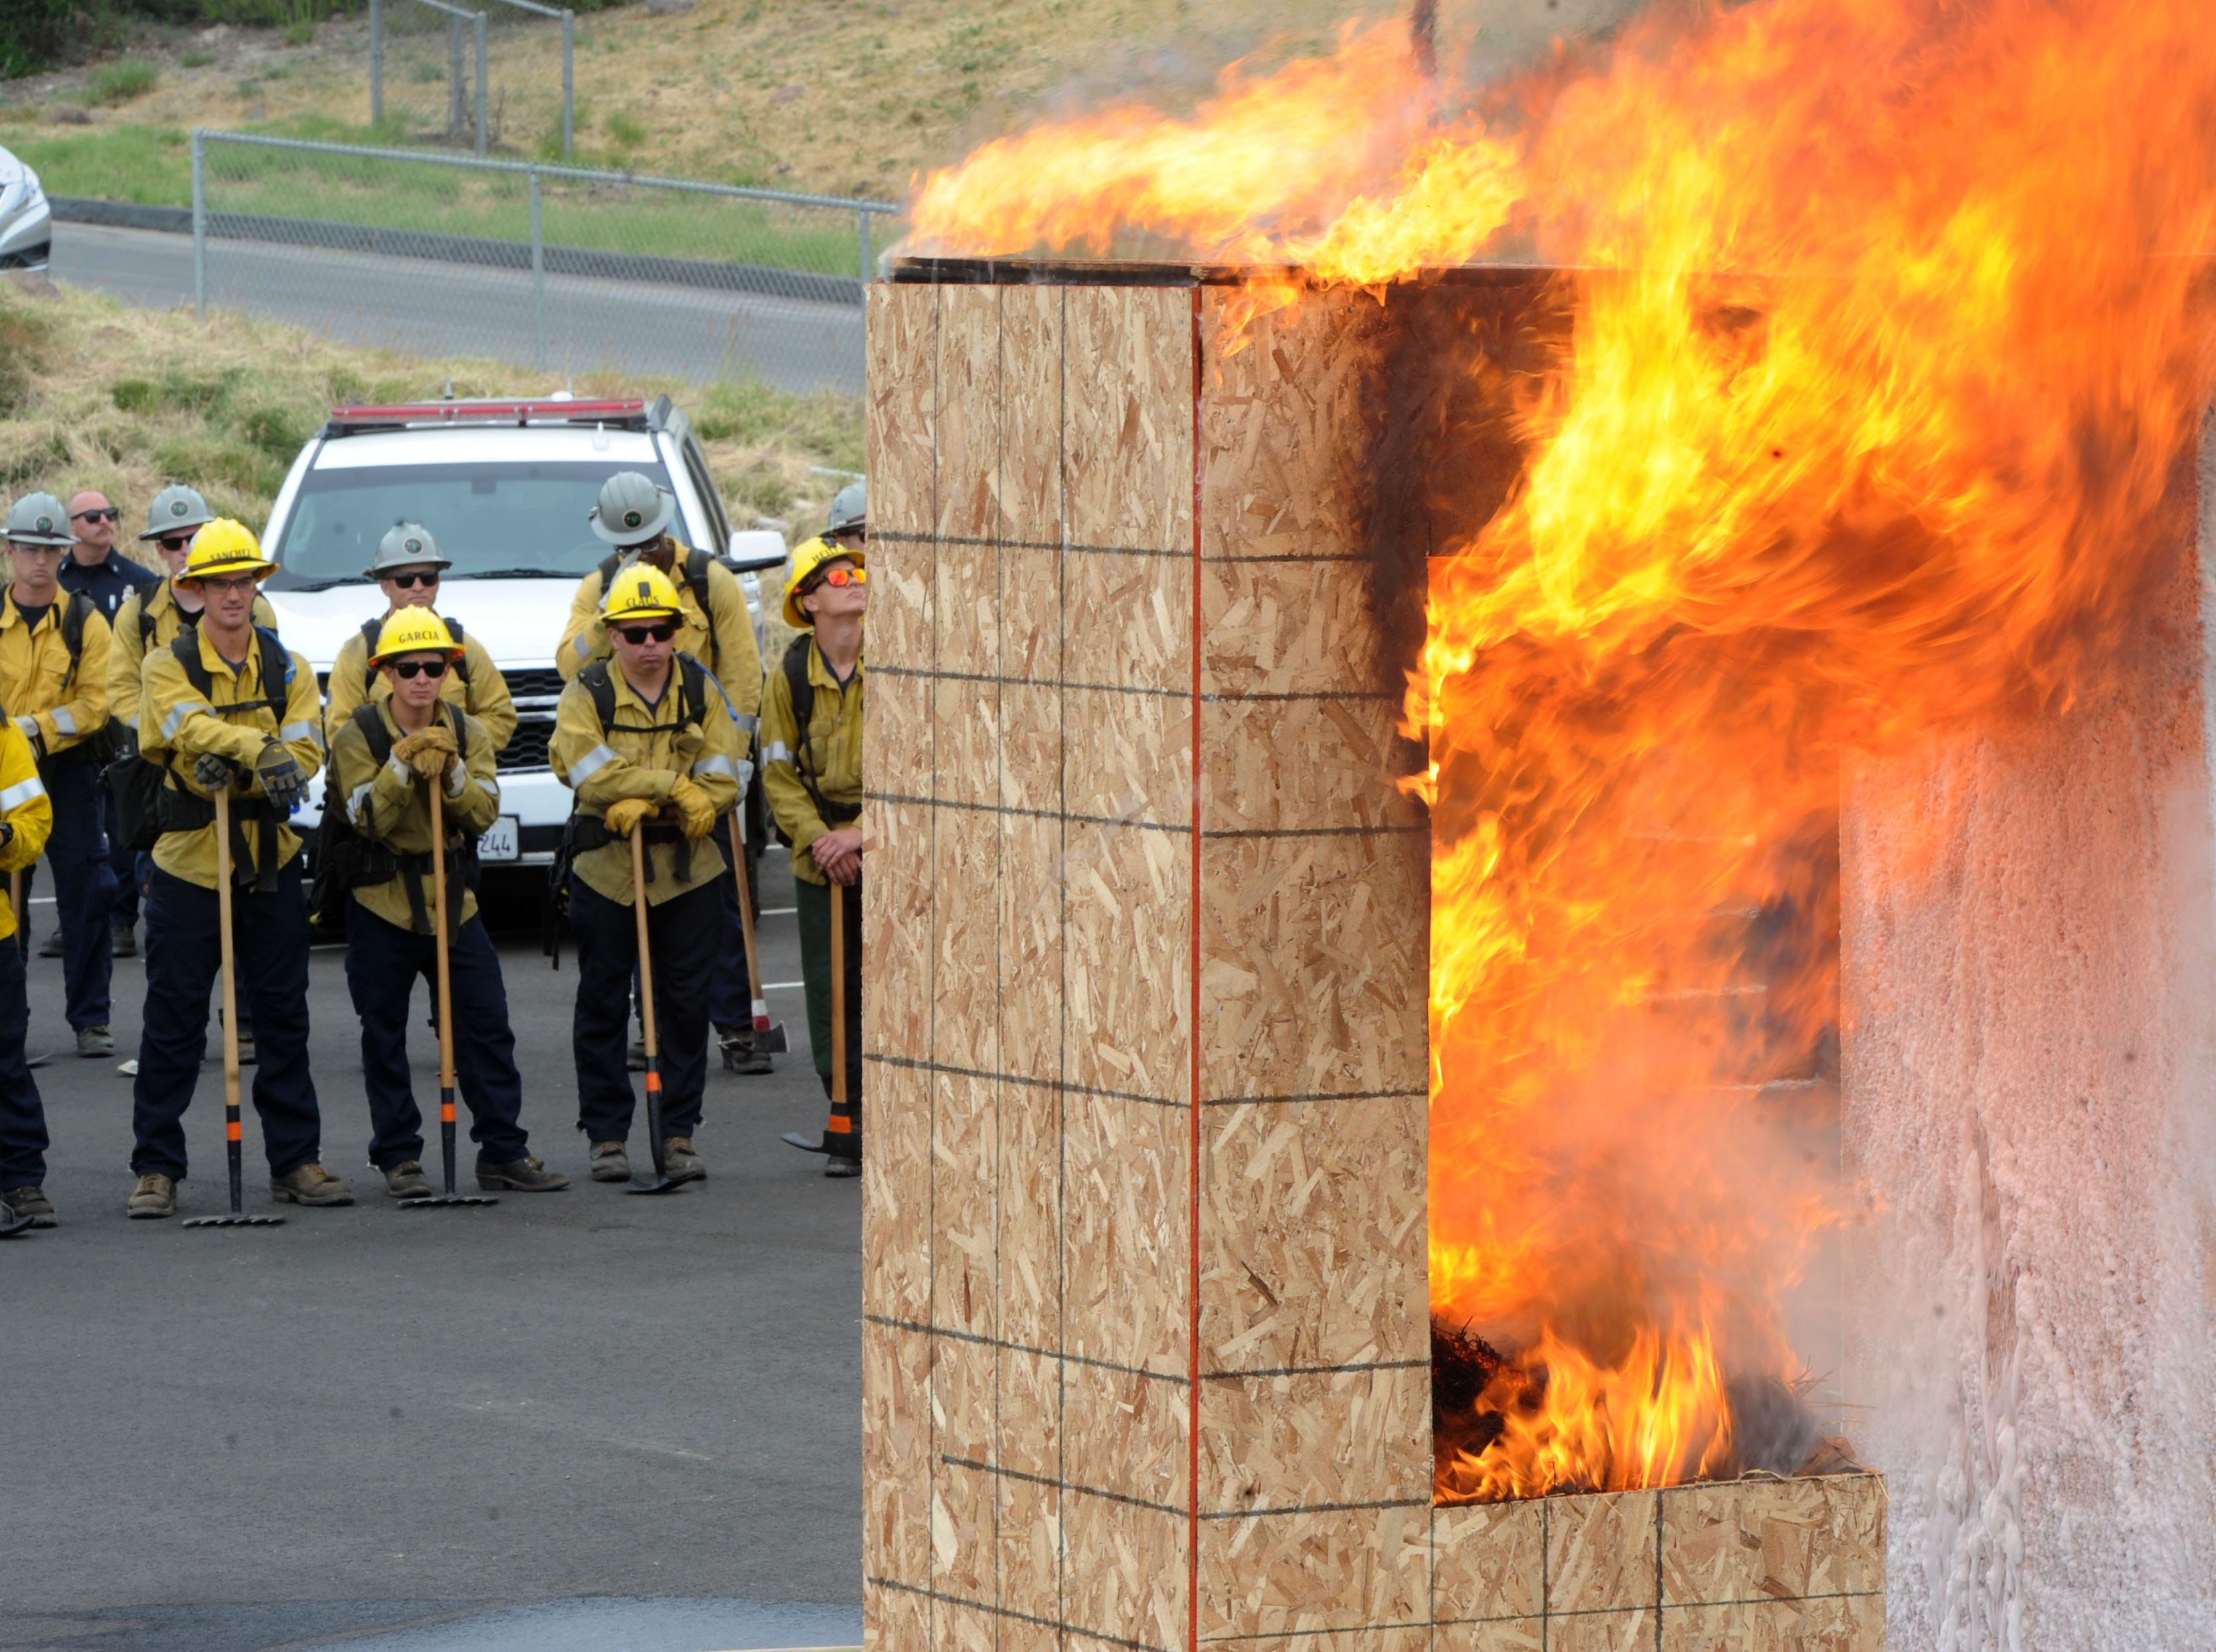 """Firefighters watch a fire demonstration Wednesday during the Southern California """"Ready for Wildfires"""" event at the Reagan Library in Simi Valley on Wednesday. The Ventura County Fire Department presented the event in partnership with Cal Fire. In addition to helicopter drops and fire demonstrations, about 400 goats were set loose to eat brush on the hills of the library."""